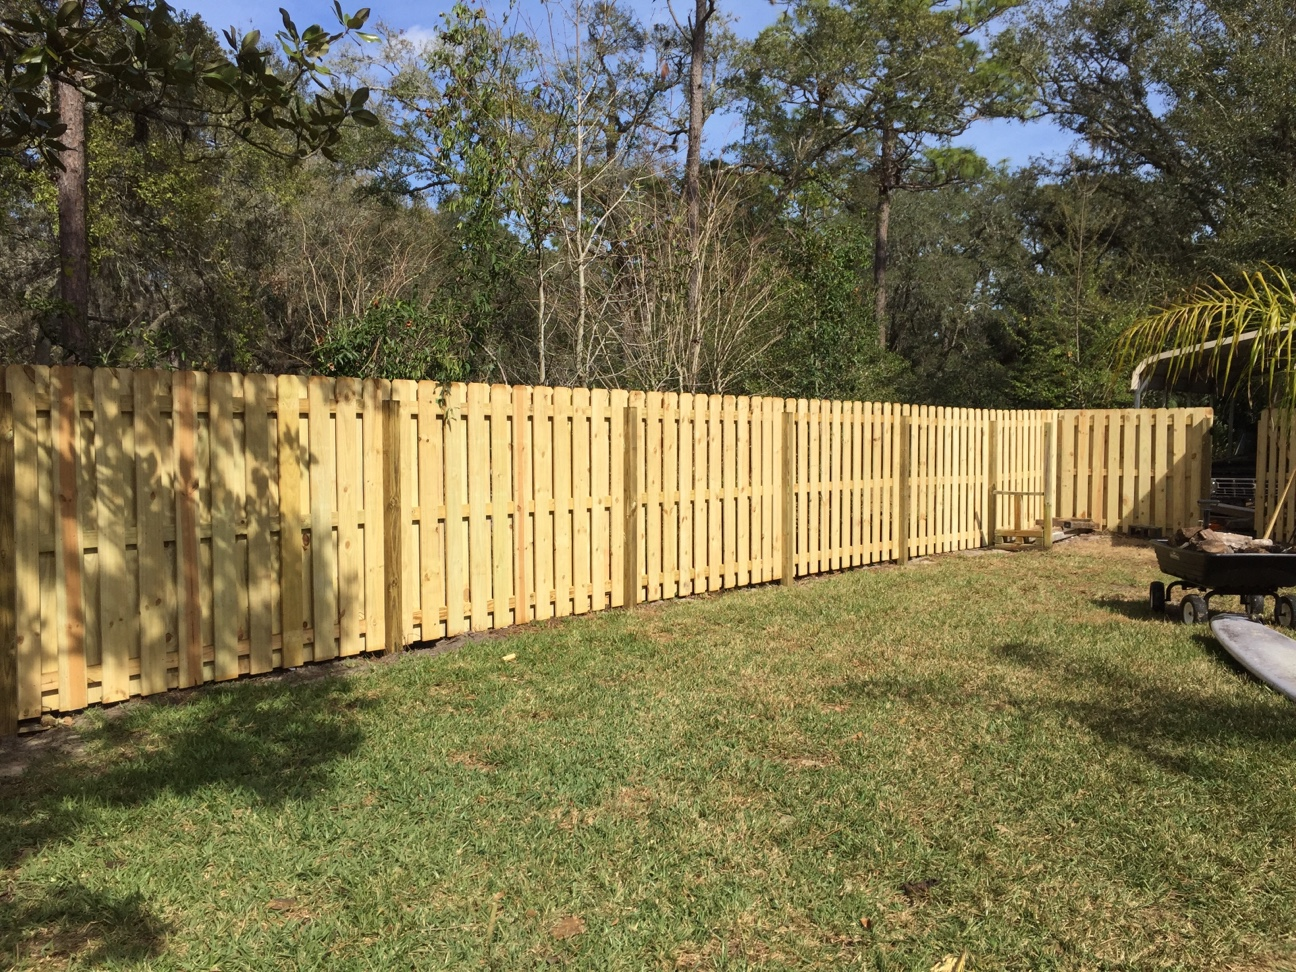 AAA FENCE - VETERAN & FAMILY OWNED SINCE 1958